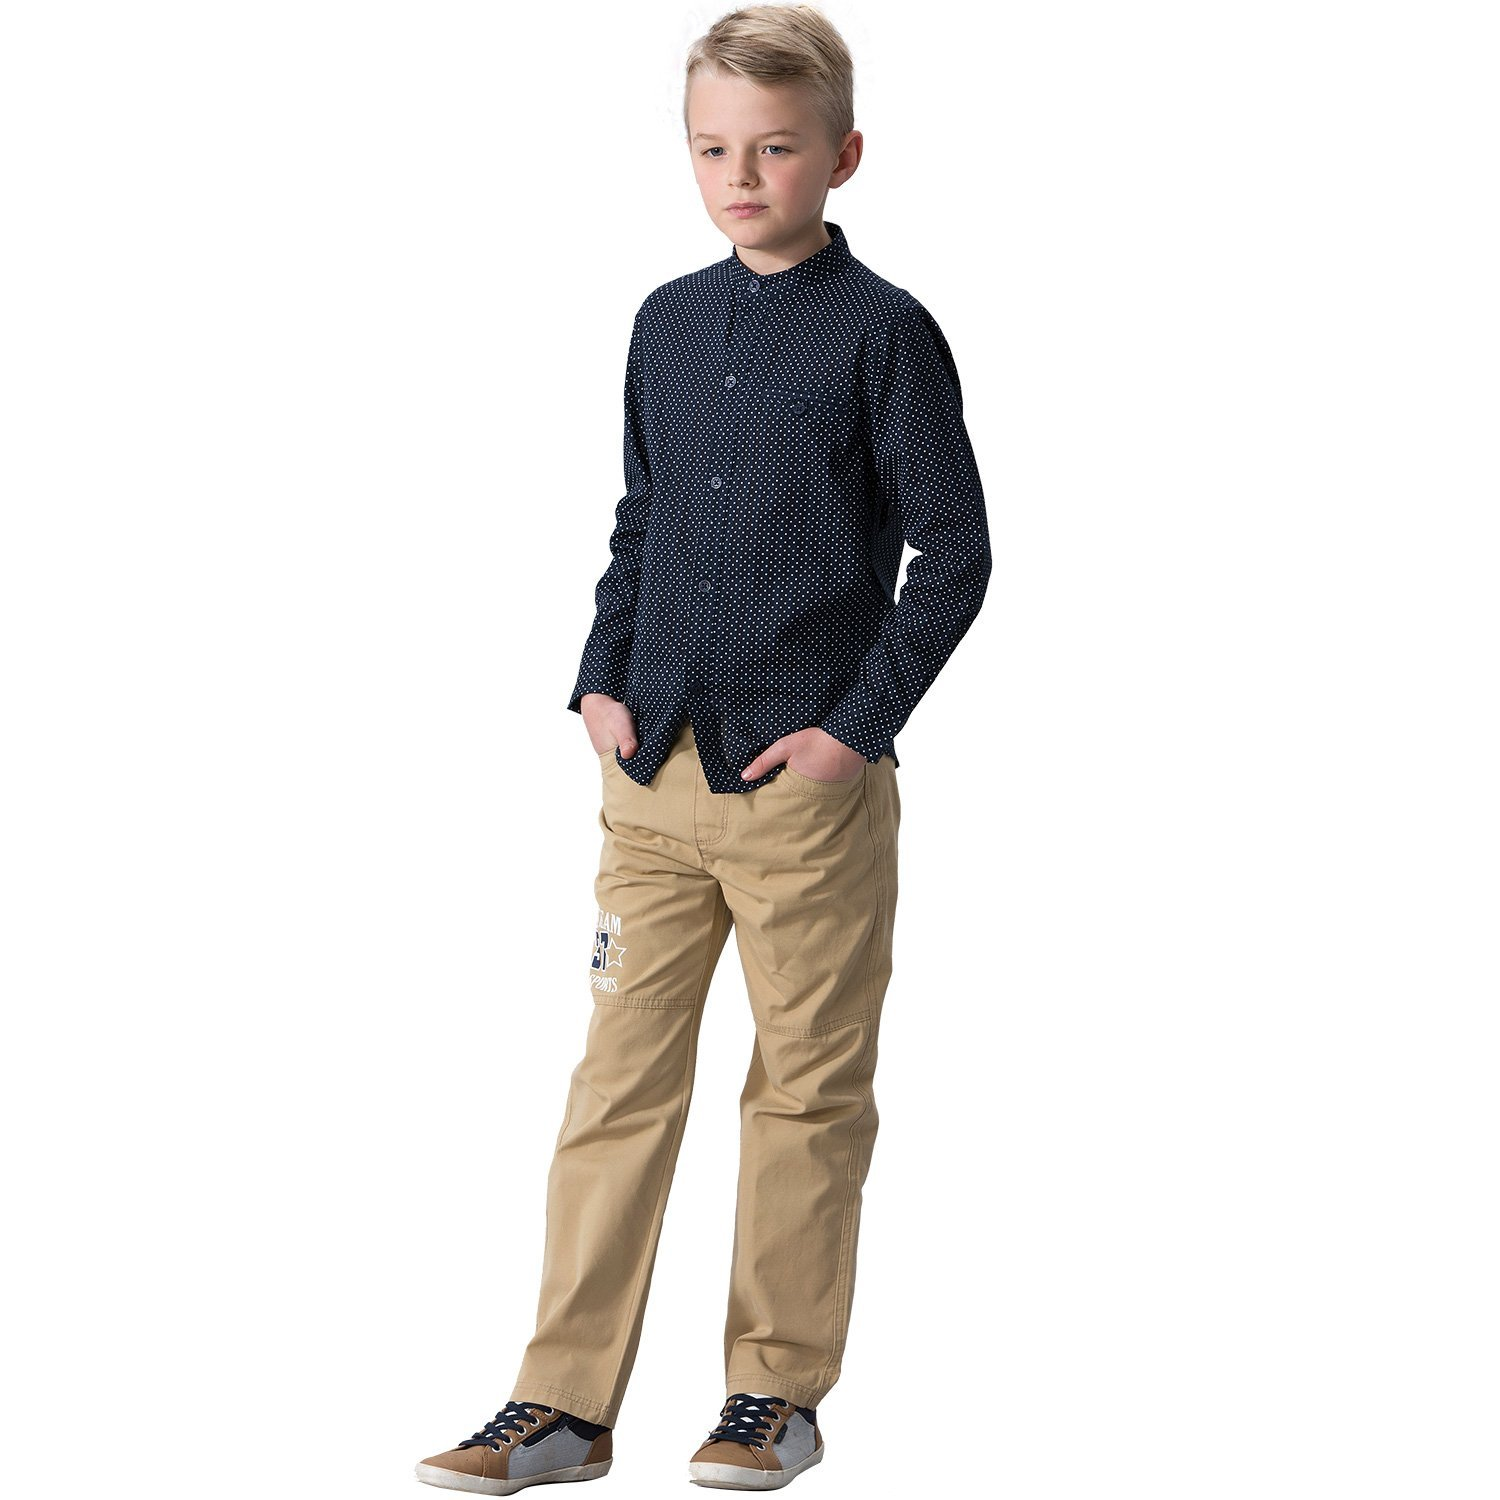 Leo&Lily Big Boys' LLB263-6-Navy, Navy, 6 by Leo&Lily (Image #8)